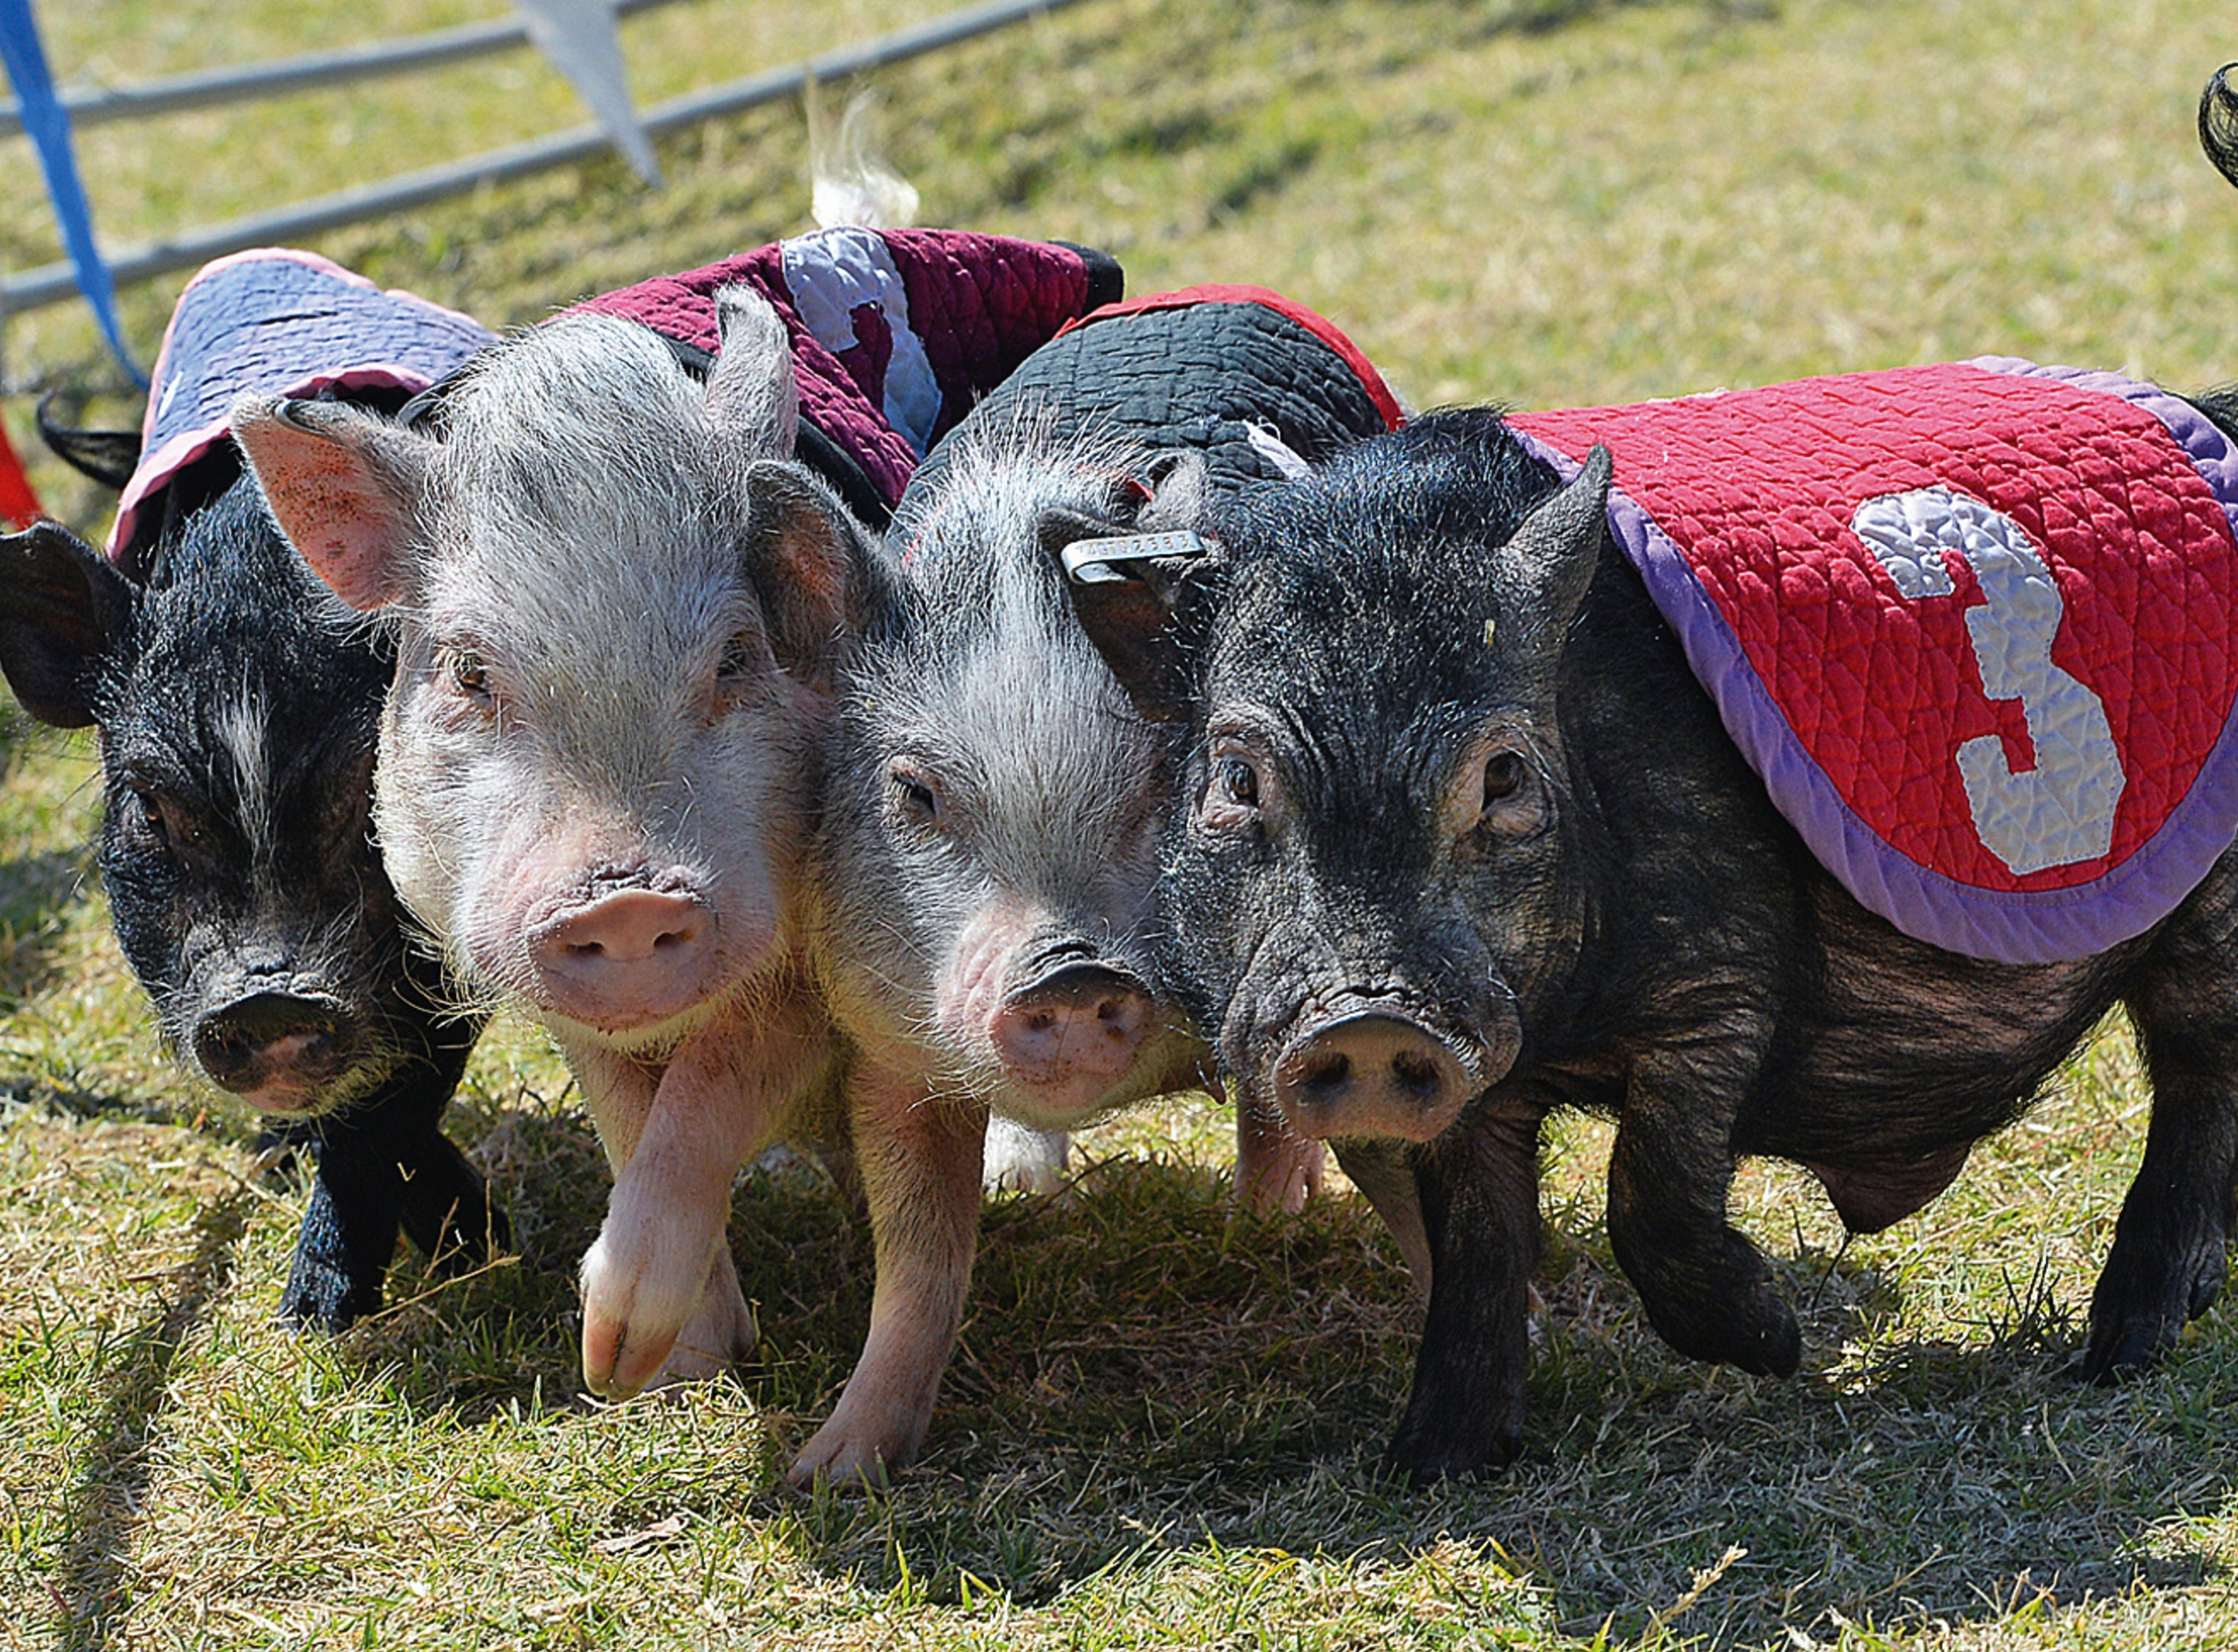 """Miniature potbellied pigs compete during a Swifty Swine Racing Pigs heat race, Wednesday, April 3, 2019, at the annual Yuma County Fair, in Yuma, Ariz. This was the """"Women of Hollywood"""" heat race, which featured, from left, Kim Kardashiham, Brittany Spareribs, Jaylopigs and Boriana Grande."""